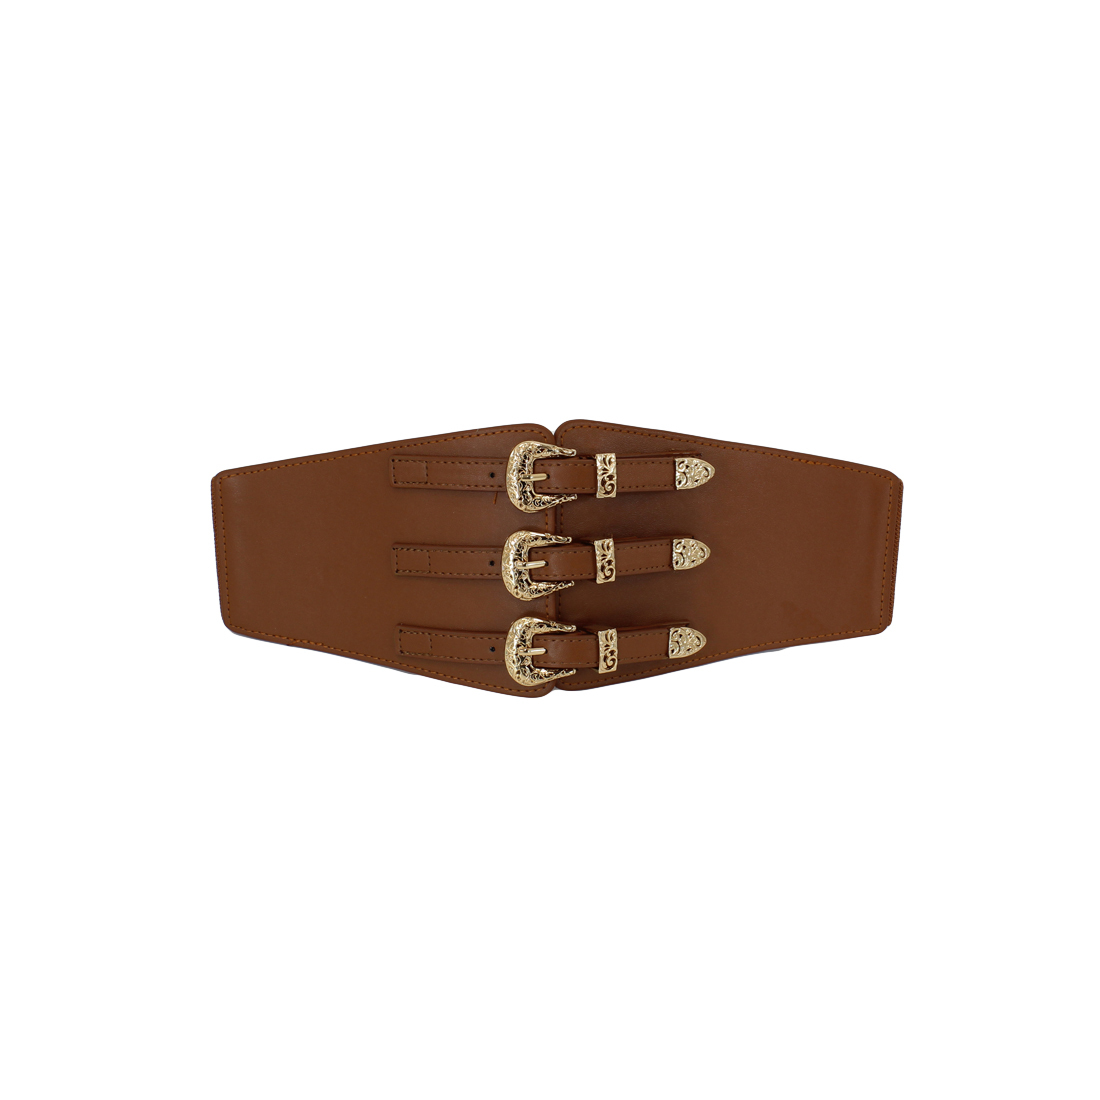 ELASTIC WIDE WITH BUCKLES